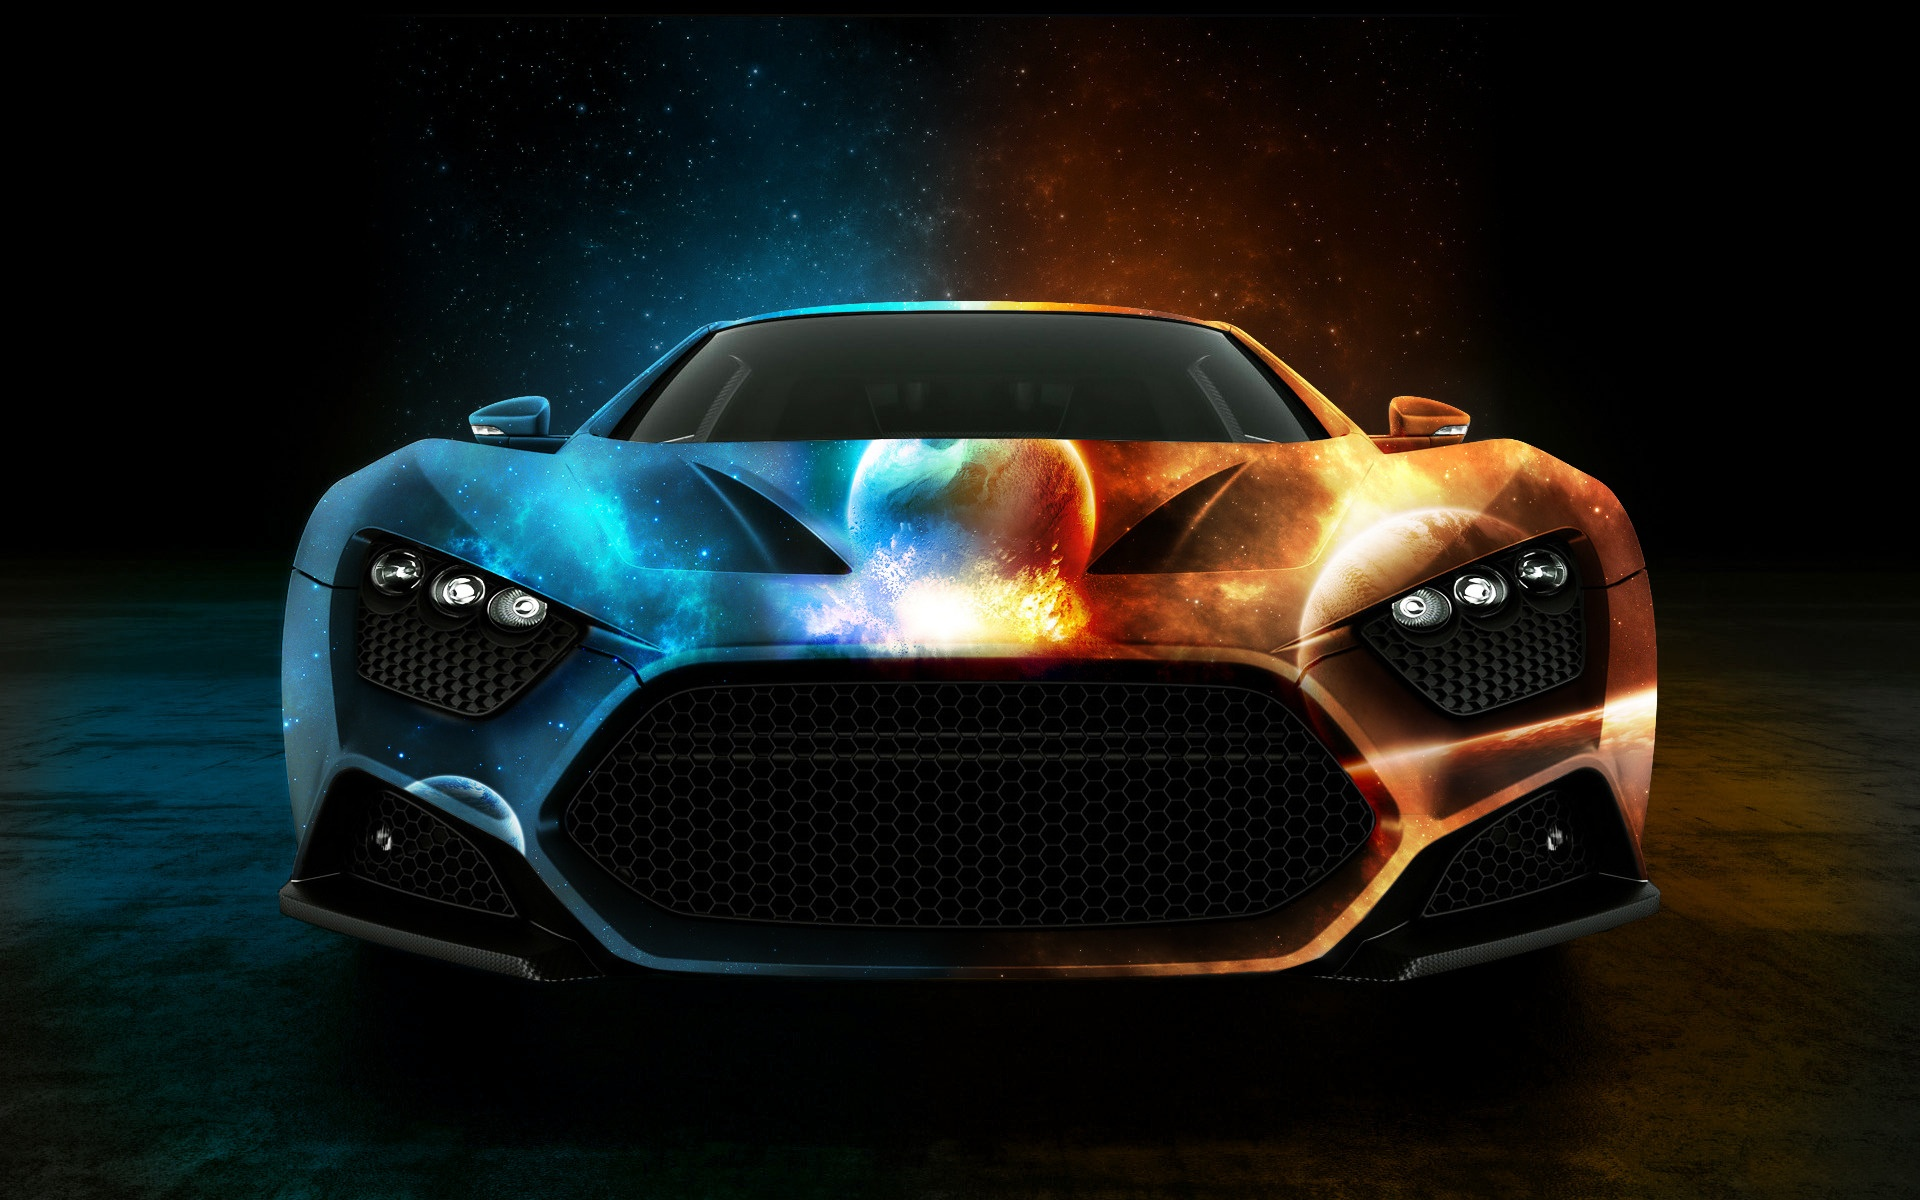 Amazing Cool Car Wallpaper PC 312 Wallpaper WallpaperLepi 1920x1200